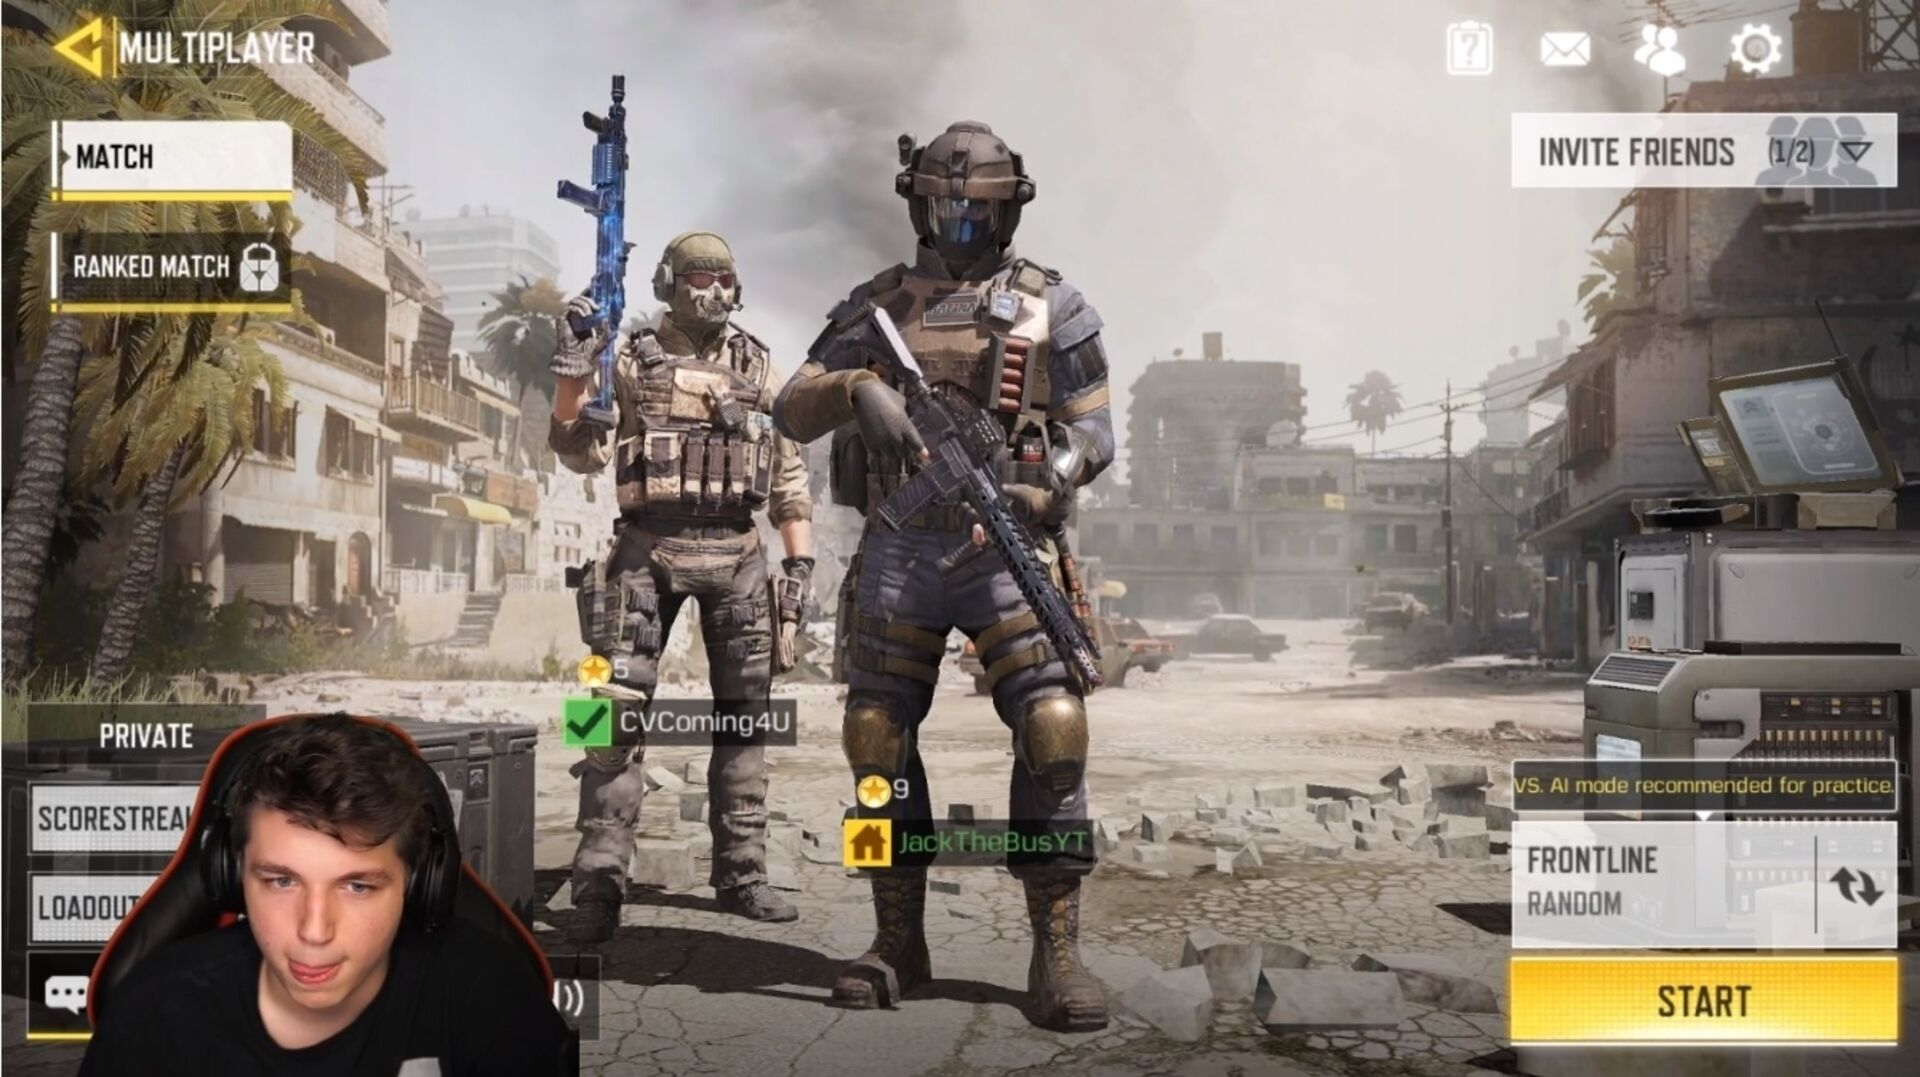 call of duty mobile thumbnail no text